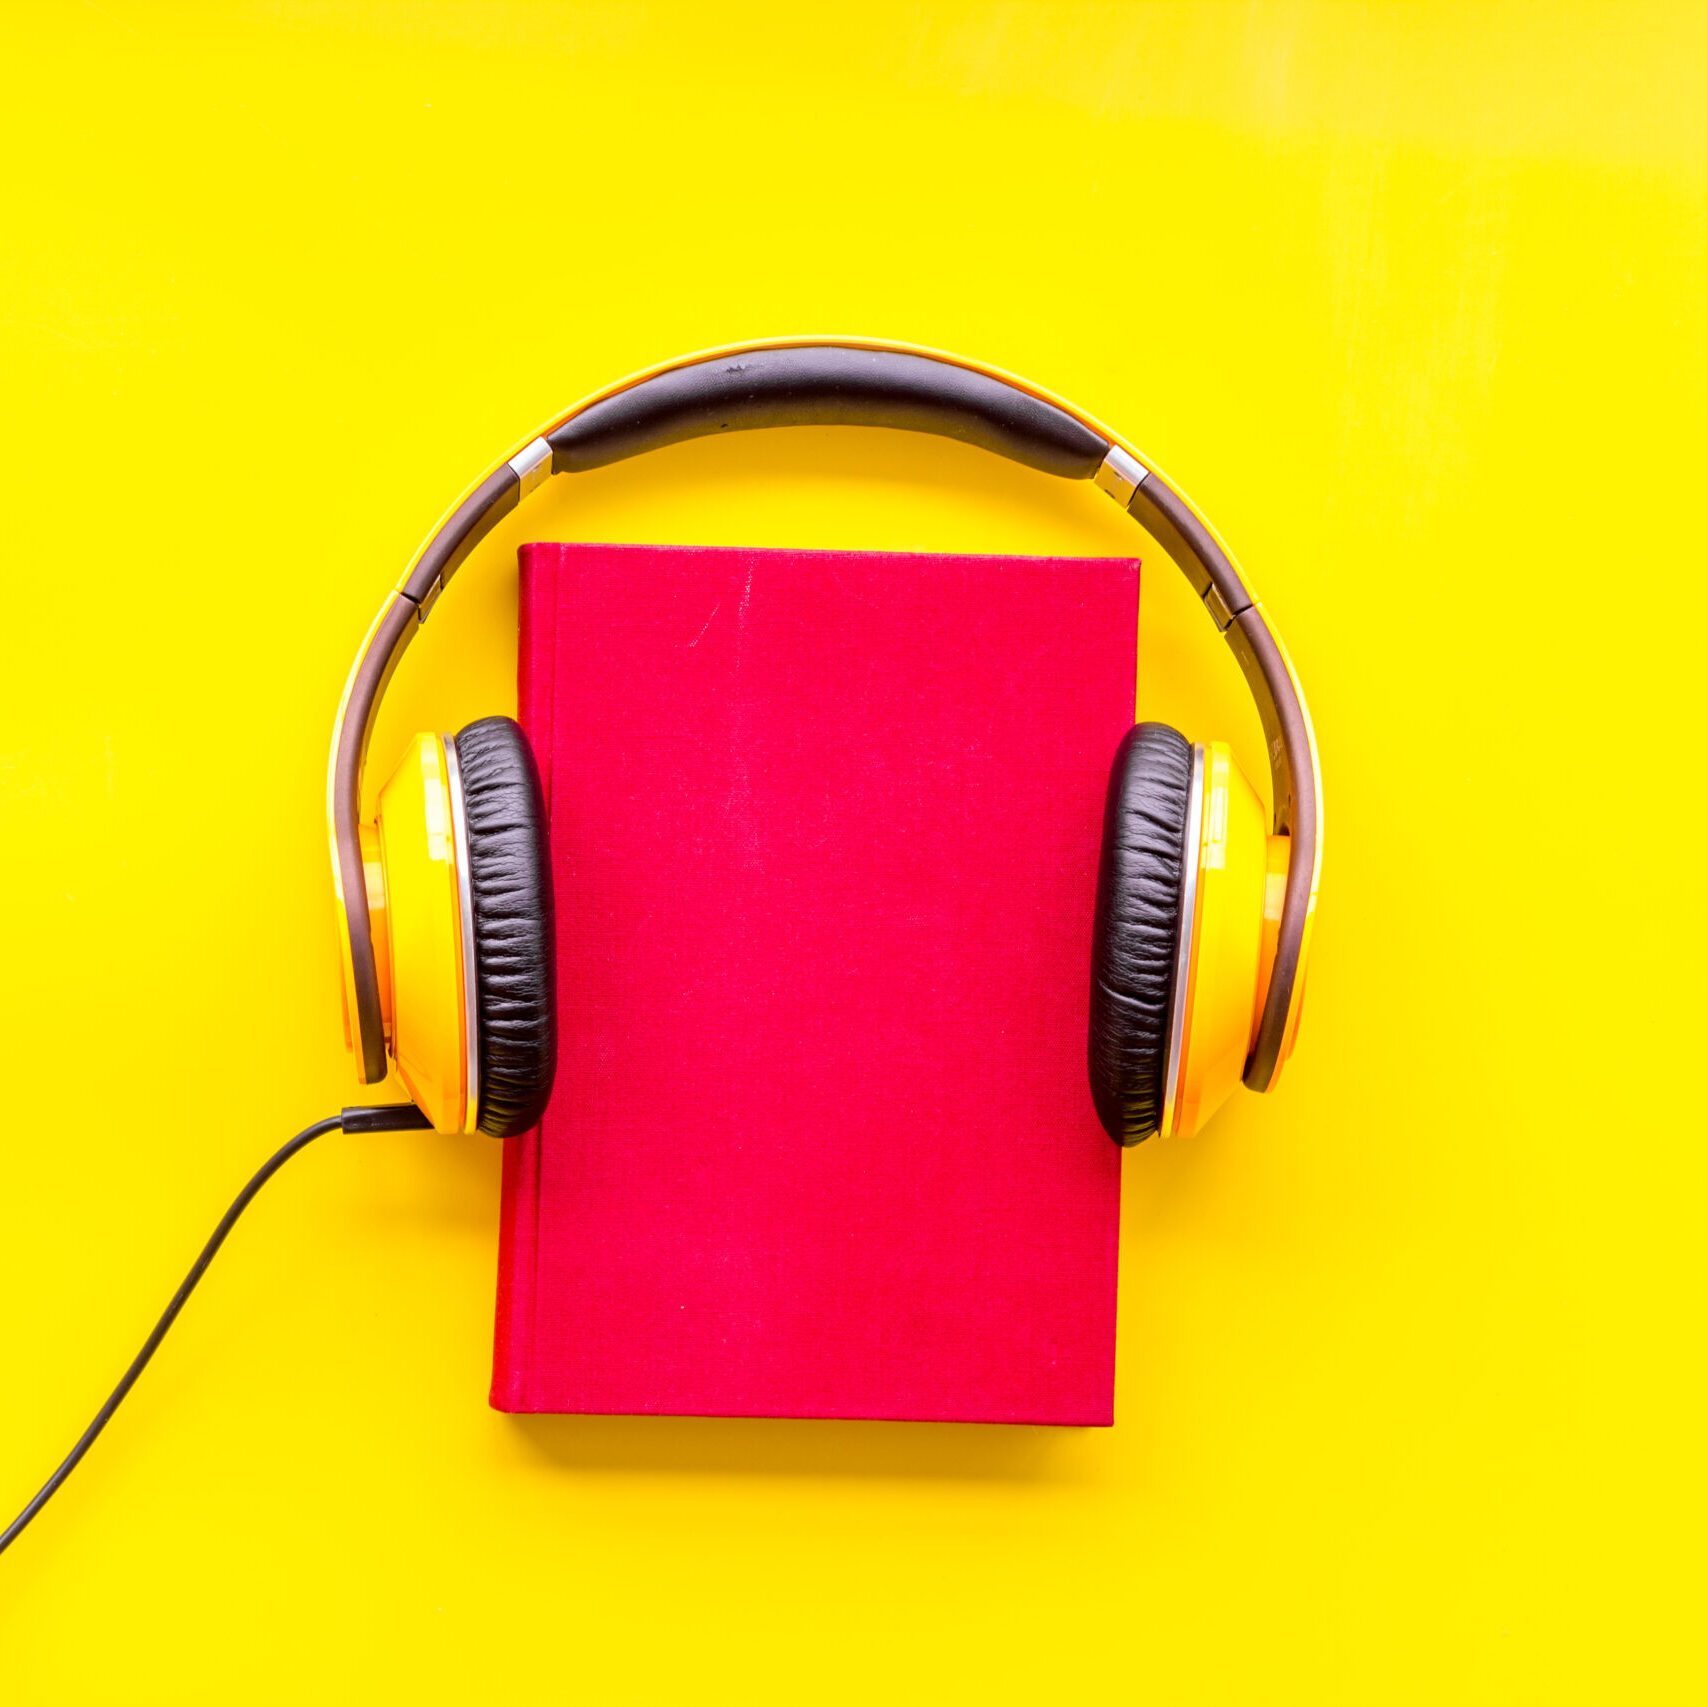 listen to audio books with headphone on yellow library desk background flatlay